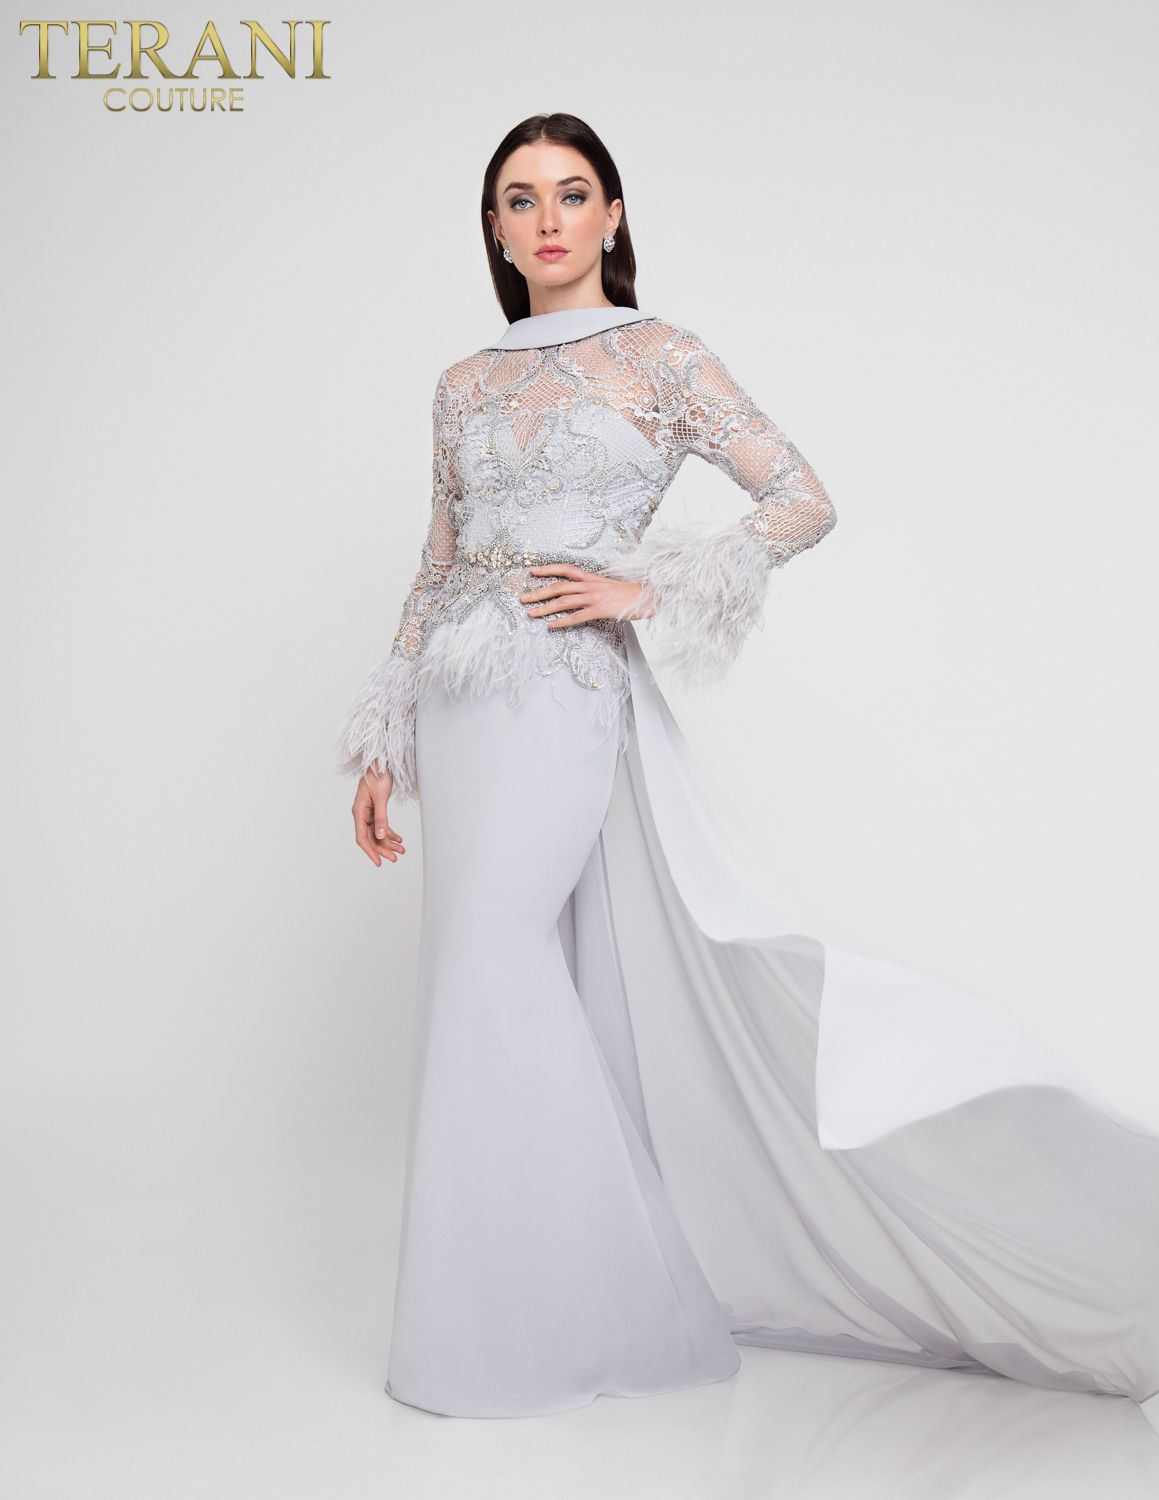 1911P8640 | Dresses, Evening gowns, Mermaid gown